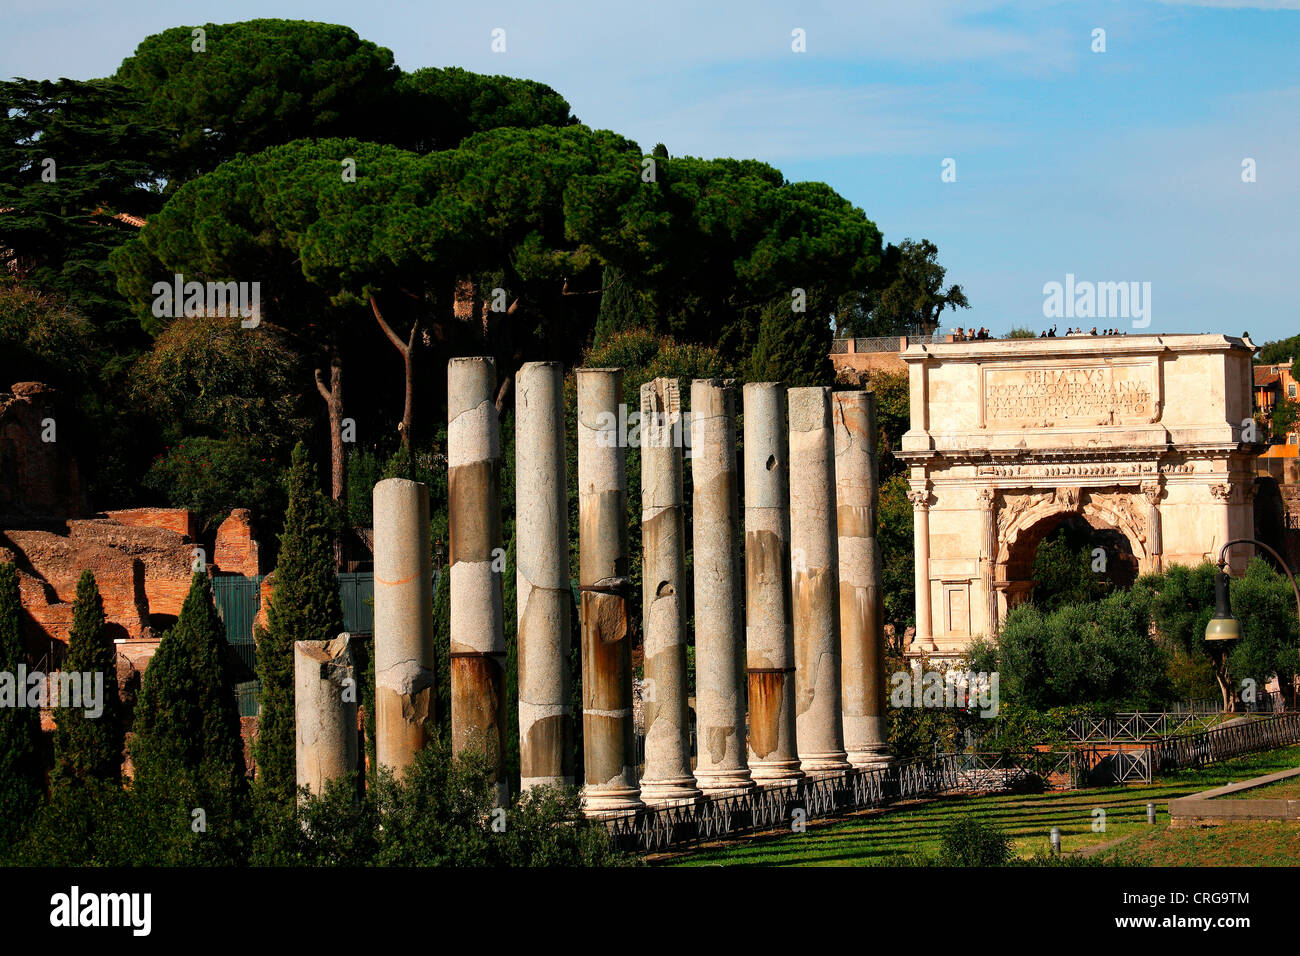 Arch of Titus on a sunny day. - Stock Image